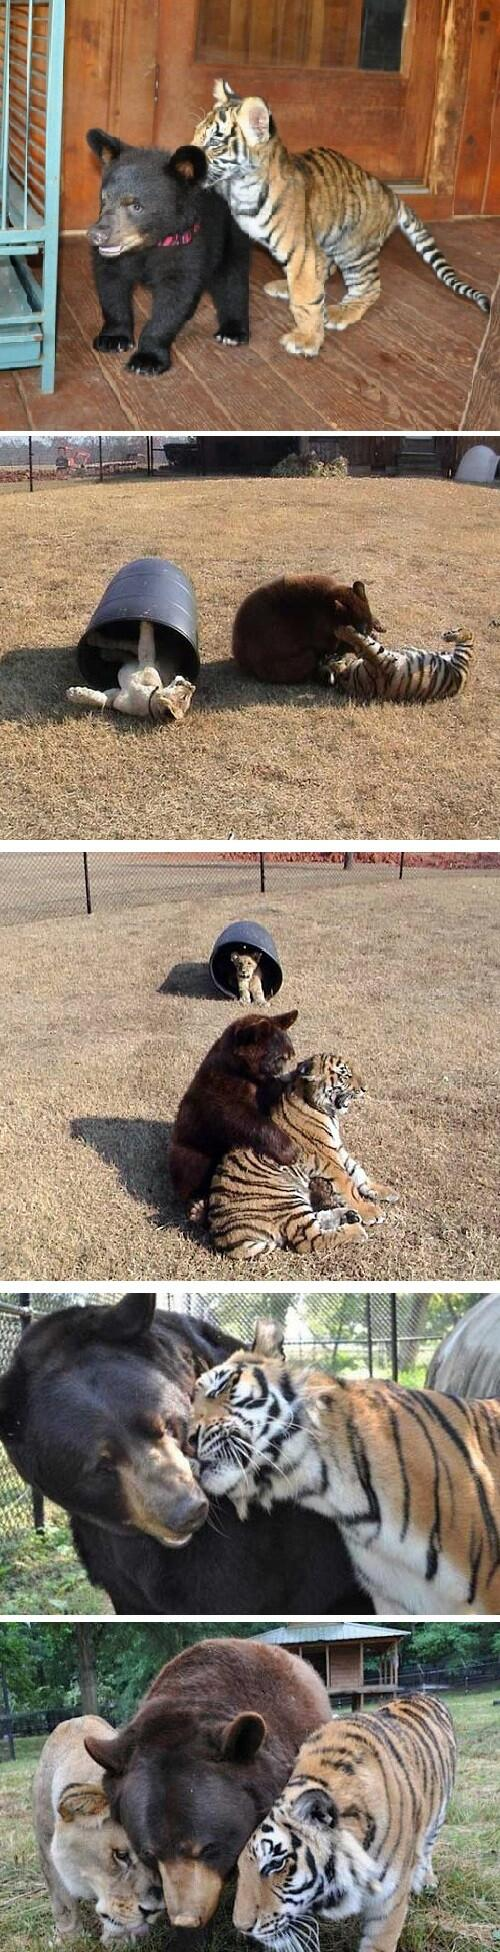 Lion, tiger and bear raised together after rescue from drug dealer: http://t.co/xWmzVI69oI